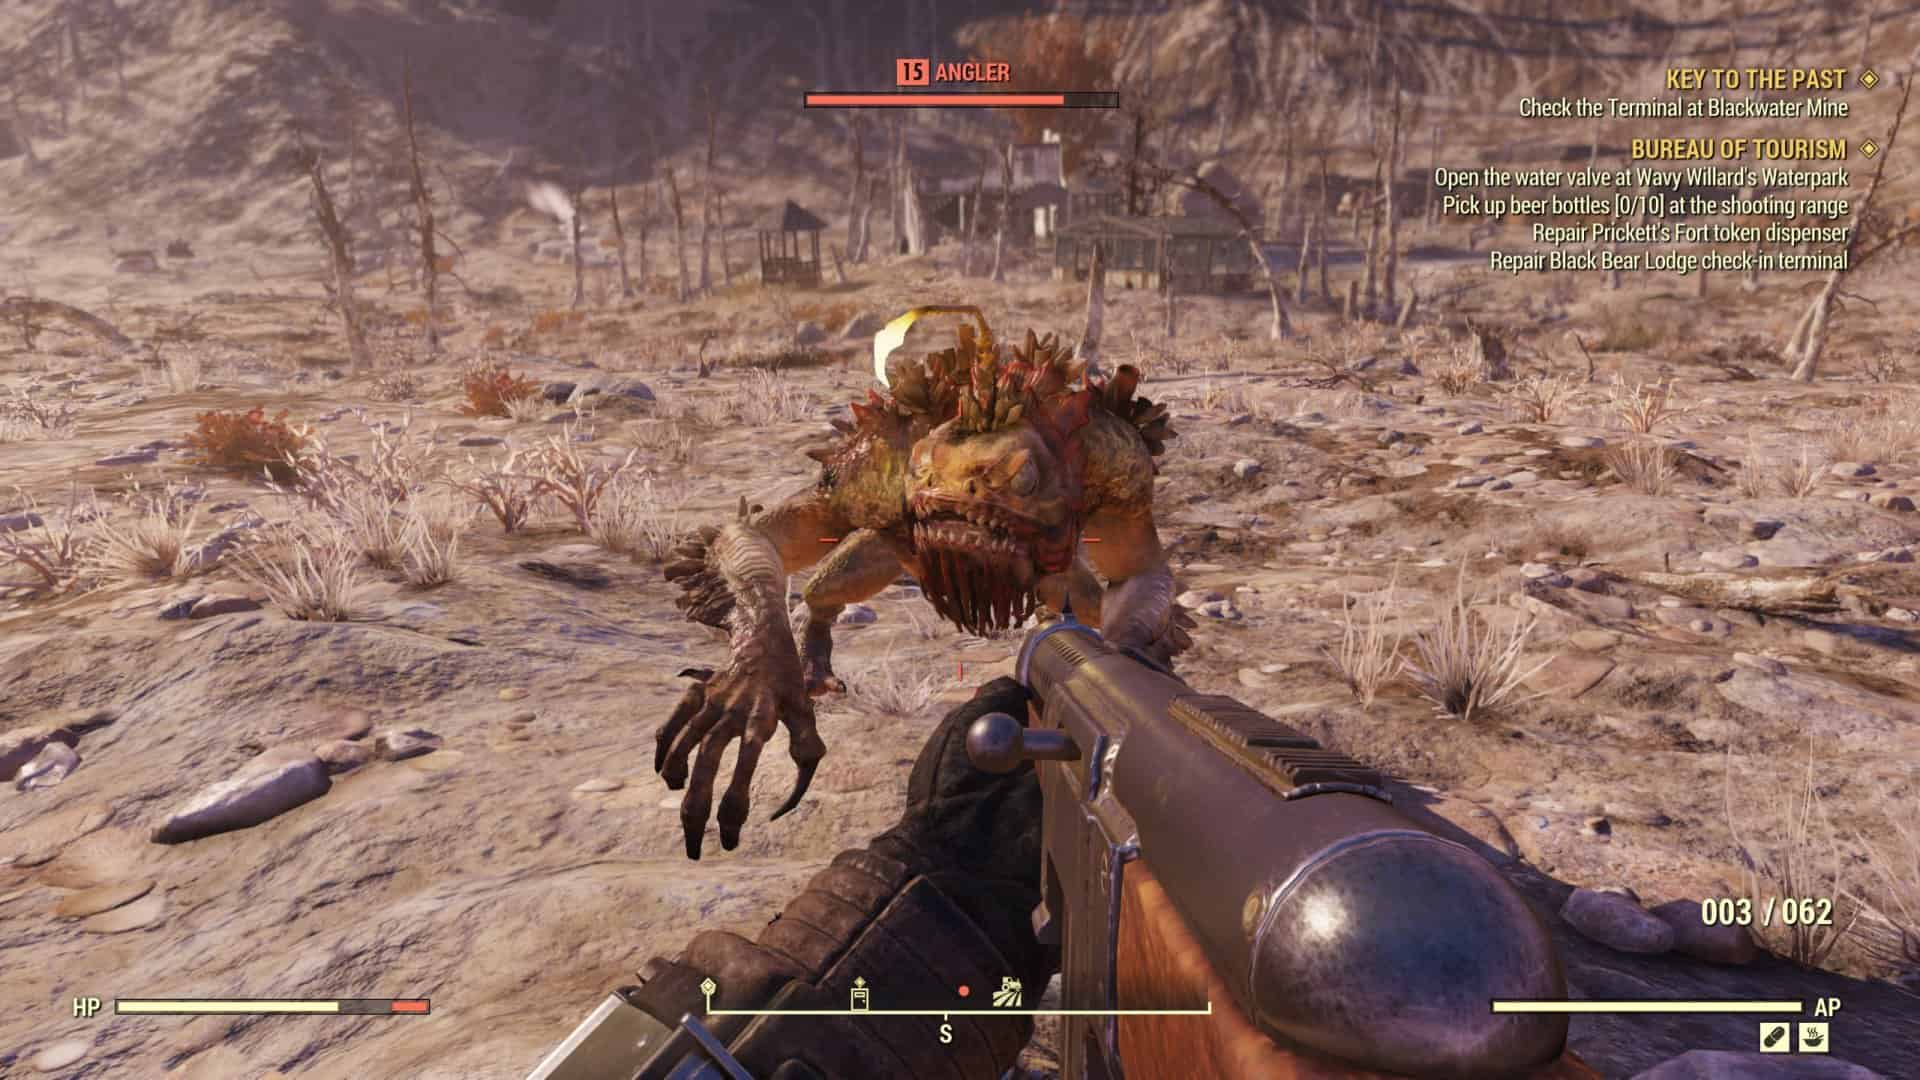 Fallout 76 PC download - GamesPCDownload